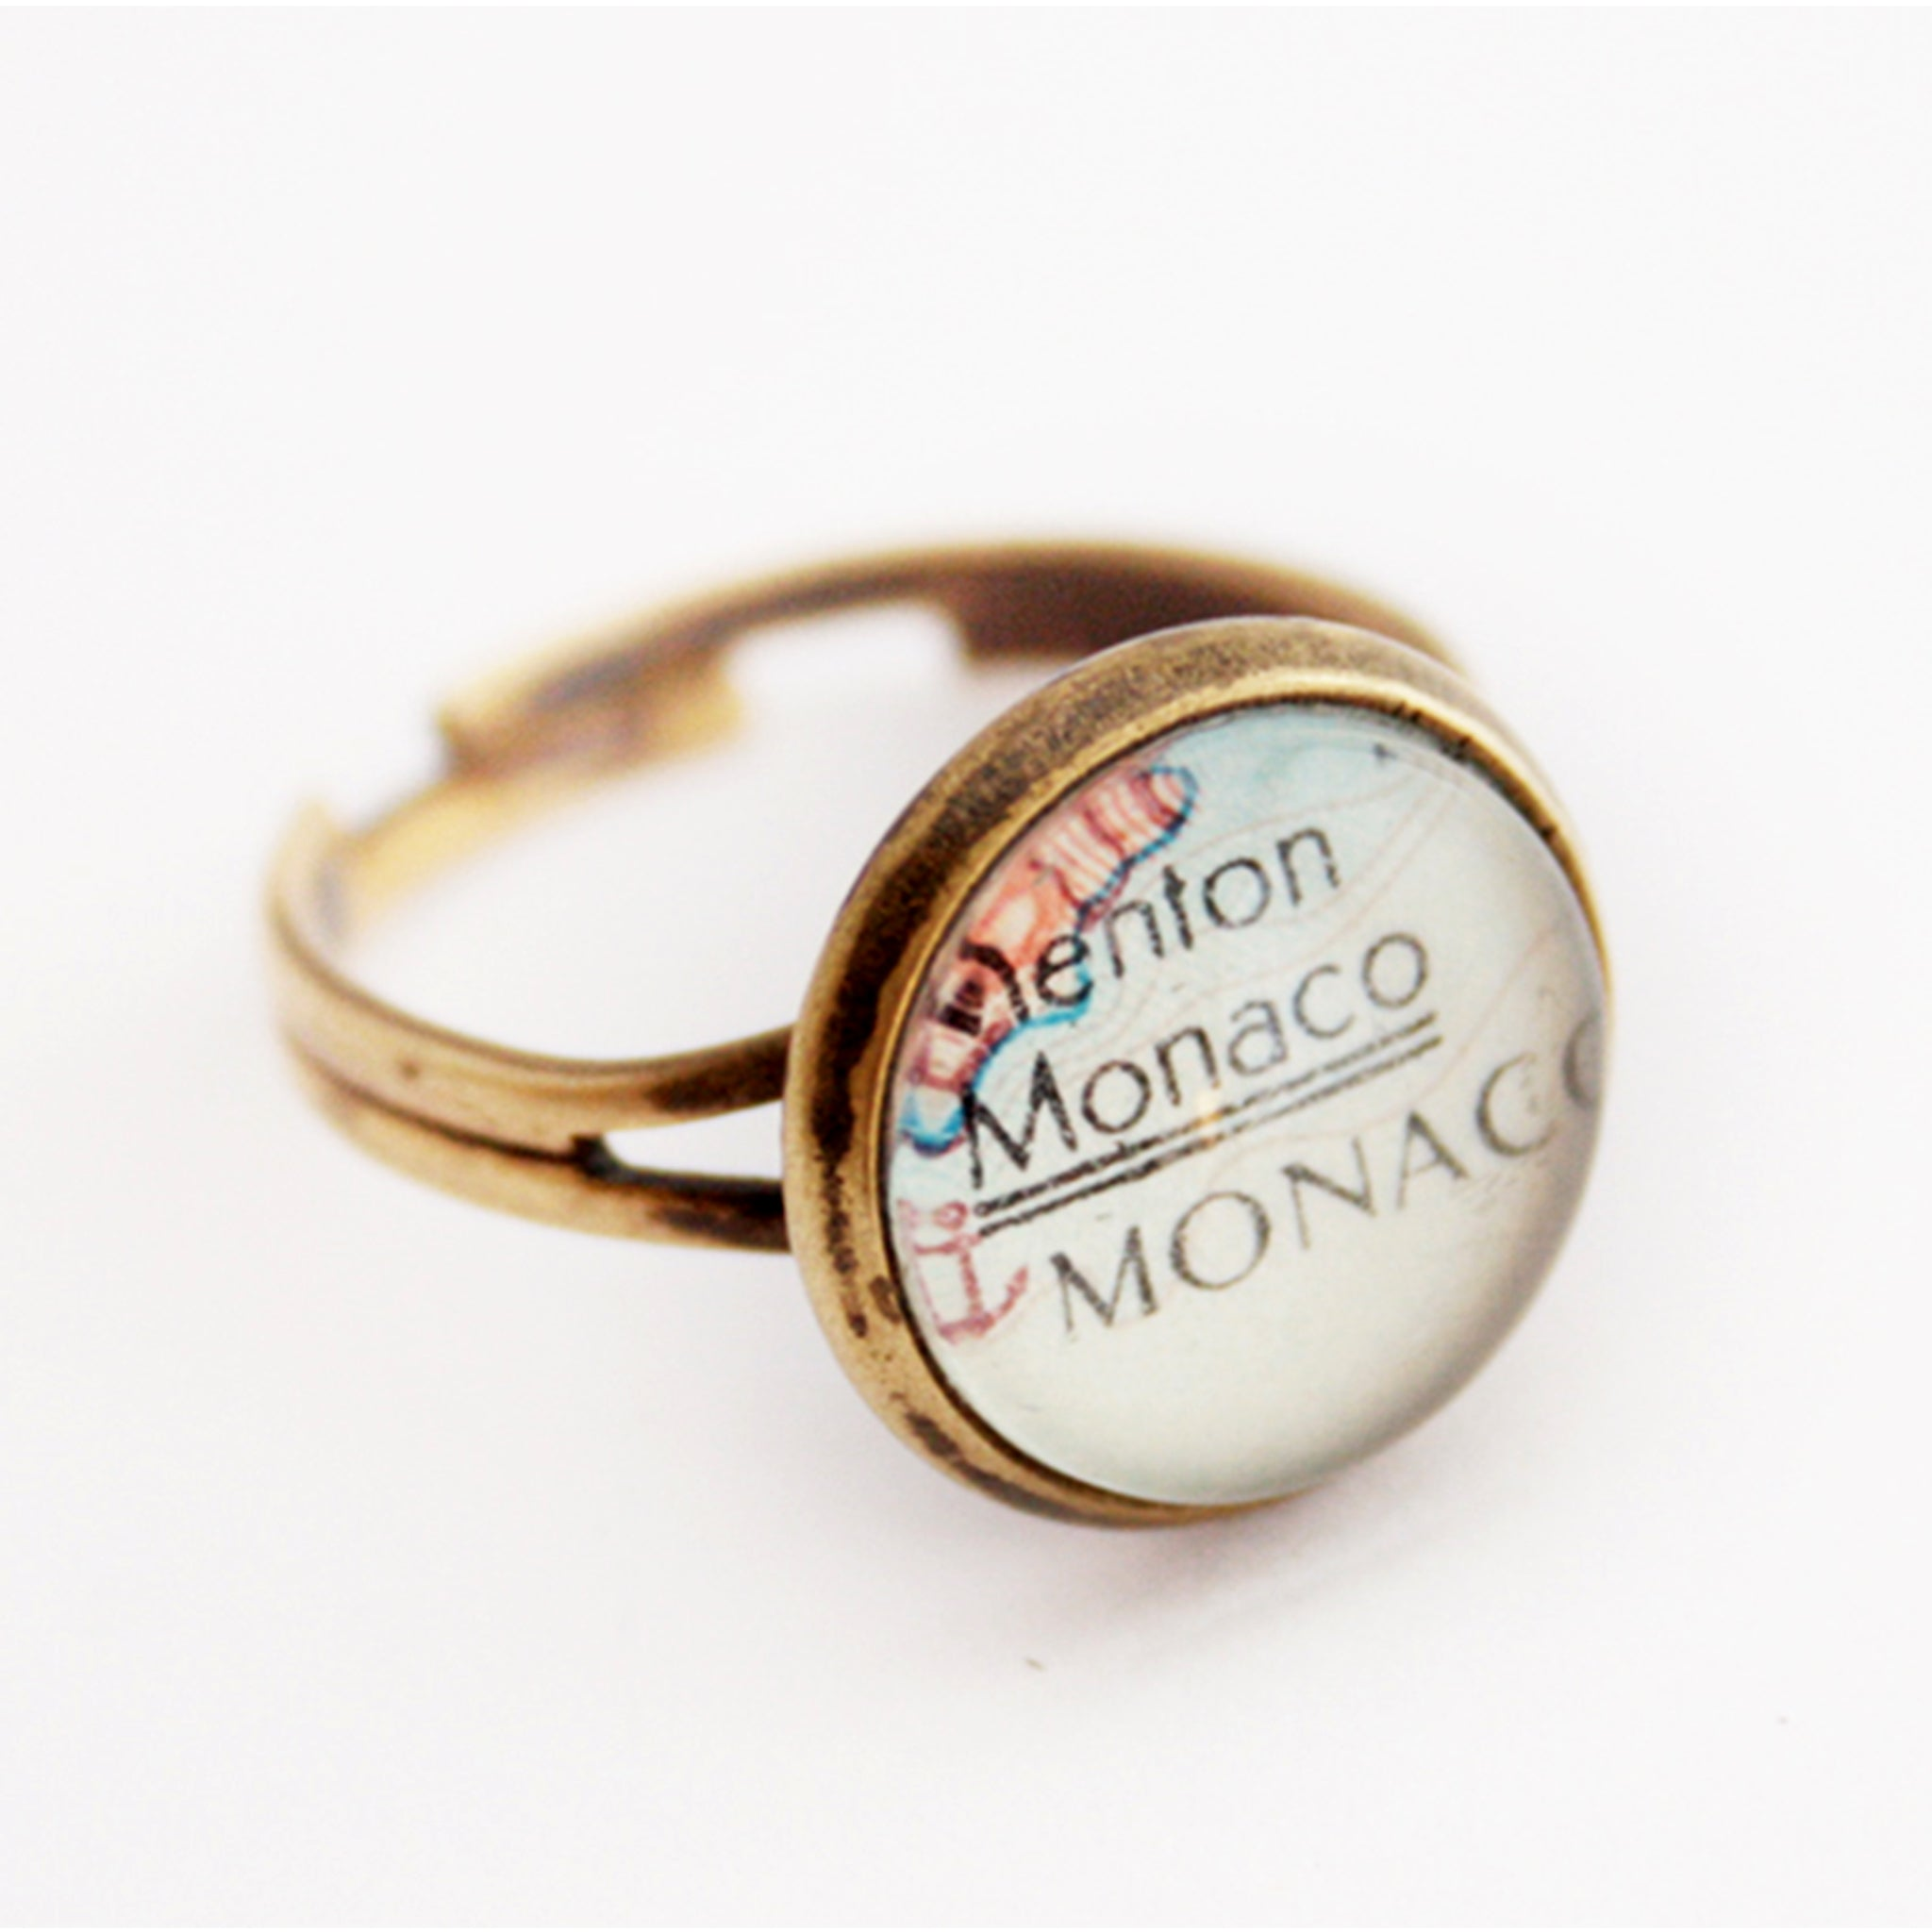 tiny wanderlust ring in antique bronze tone personalised with map of Monaco